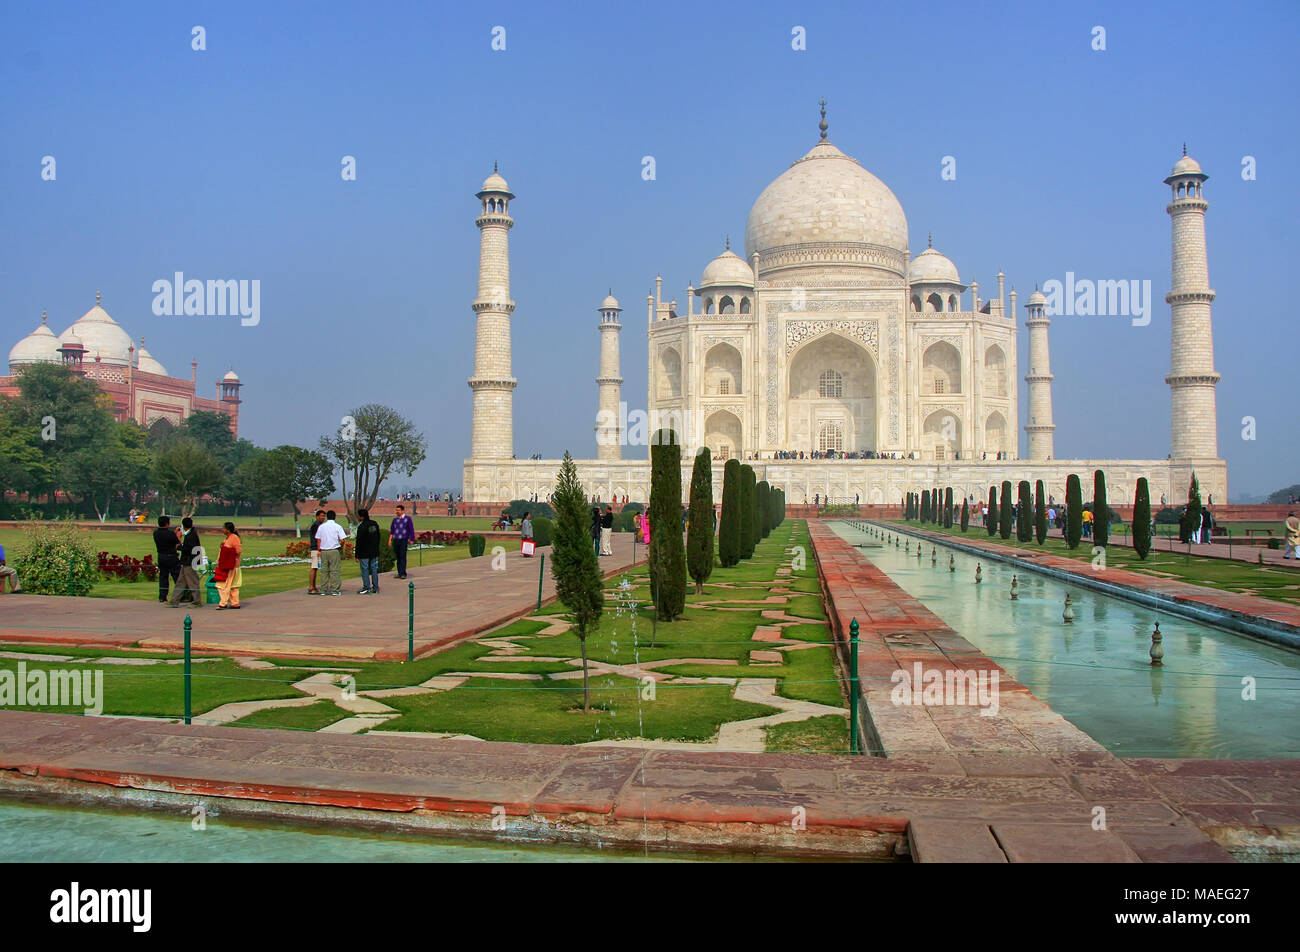 Taj Mahal with reflecting pool in Agra, Uttar Pradesh, India. It was build in 1632 by Emperor Shah Jahan as a memorial for his second wife Mumtaz Maha - Stock Image